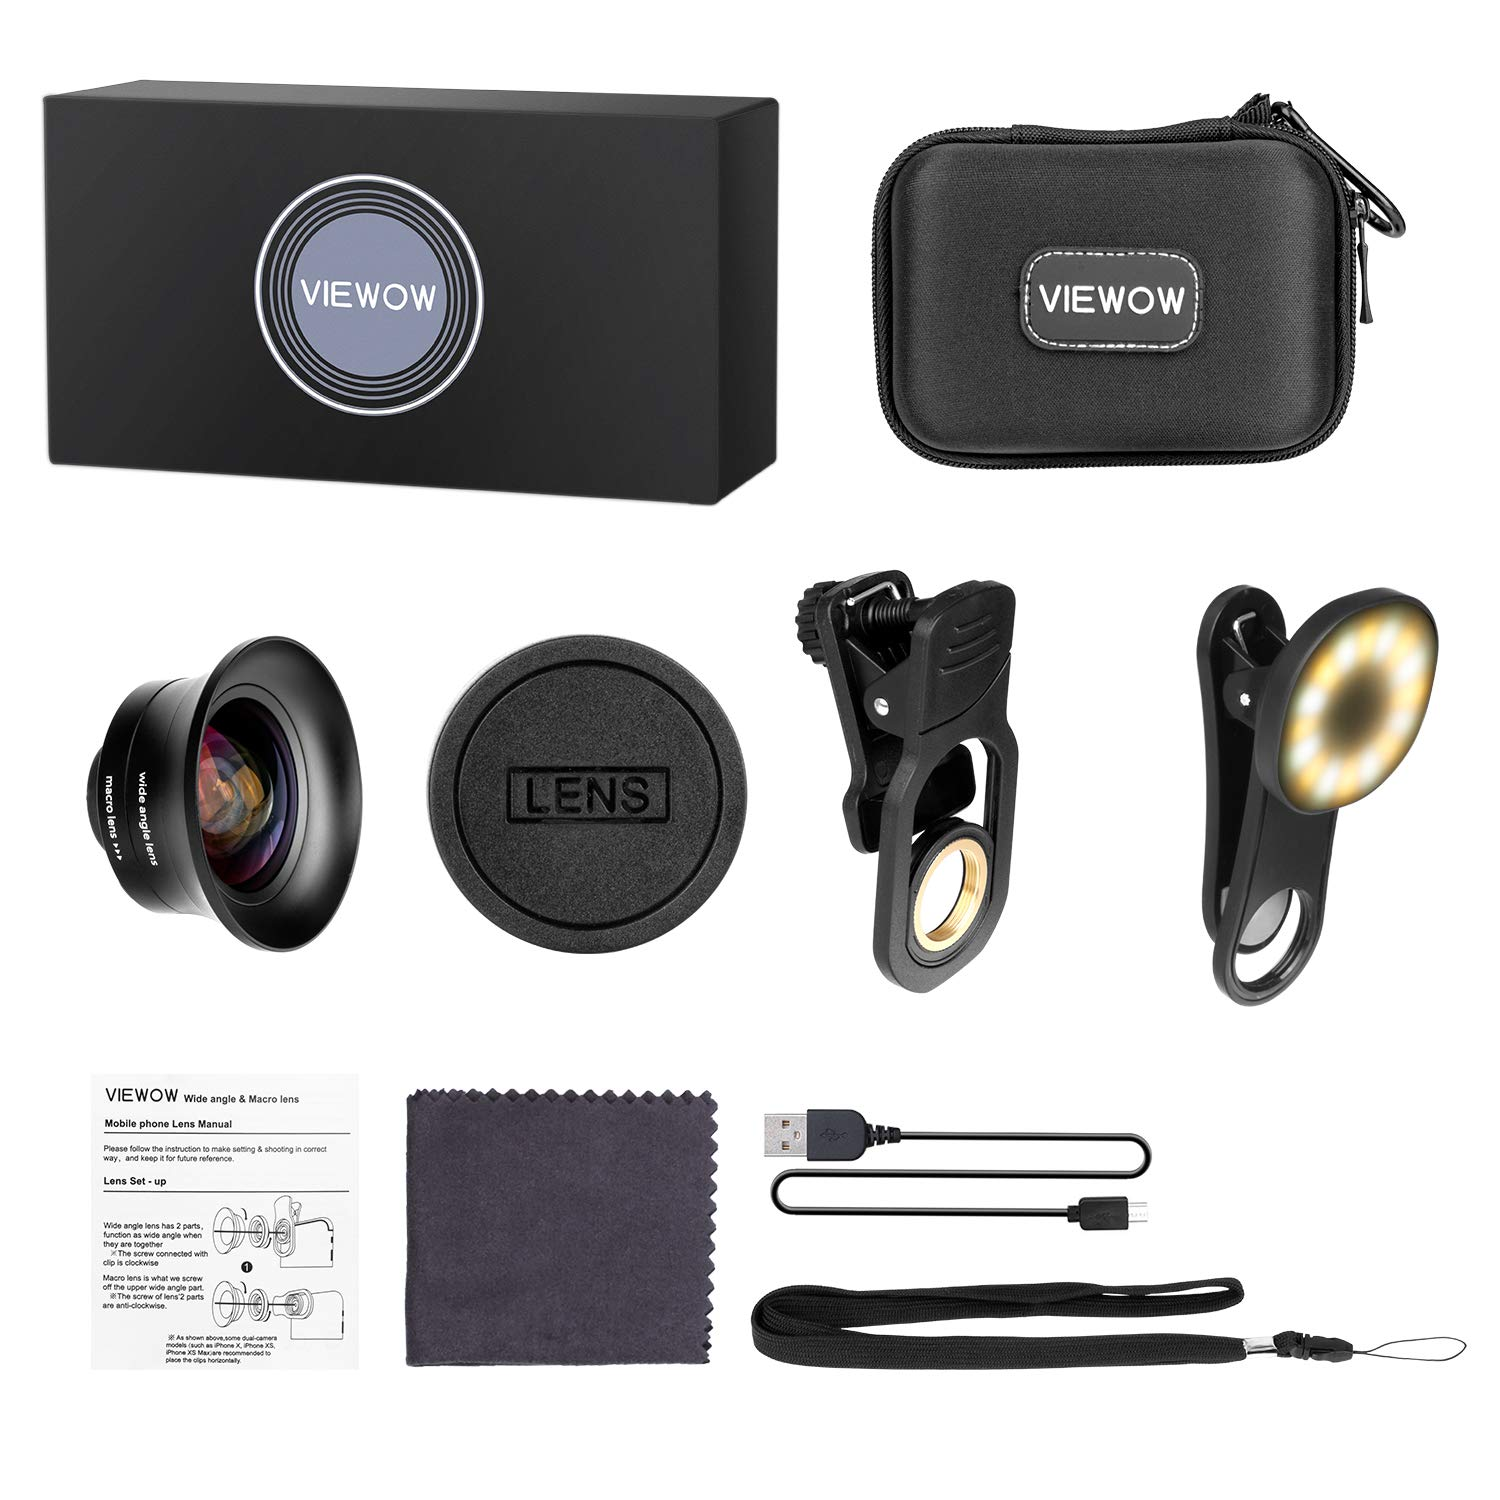 Cell Phone Camera Lens Kit – VIEWOW 4K HD 7 Optical Glasses 15X Macro 0.45X Wide Angle Phone Lens Kit with LED Light and Travel Case, Compatible with iPhone X/XS/8/7 Plus Samsung Pixel by VIEWOW (Image #8)